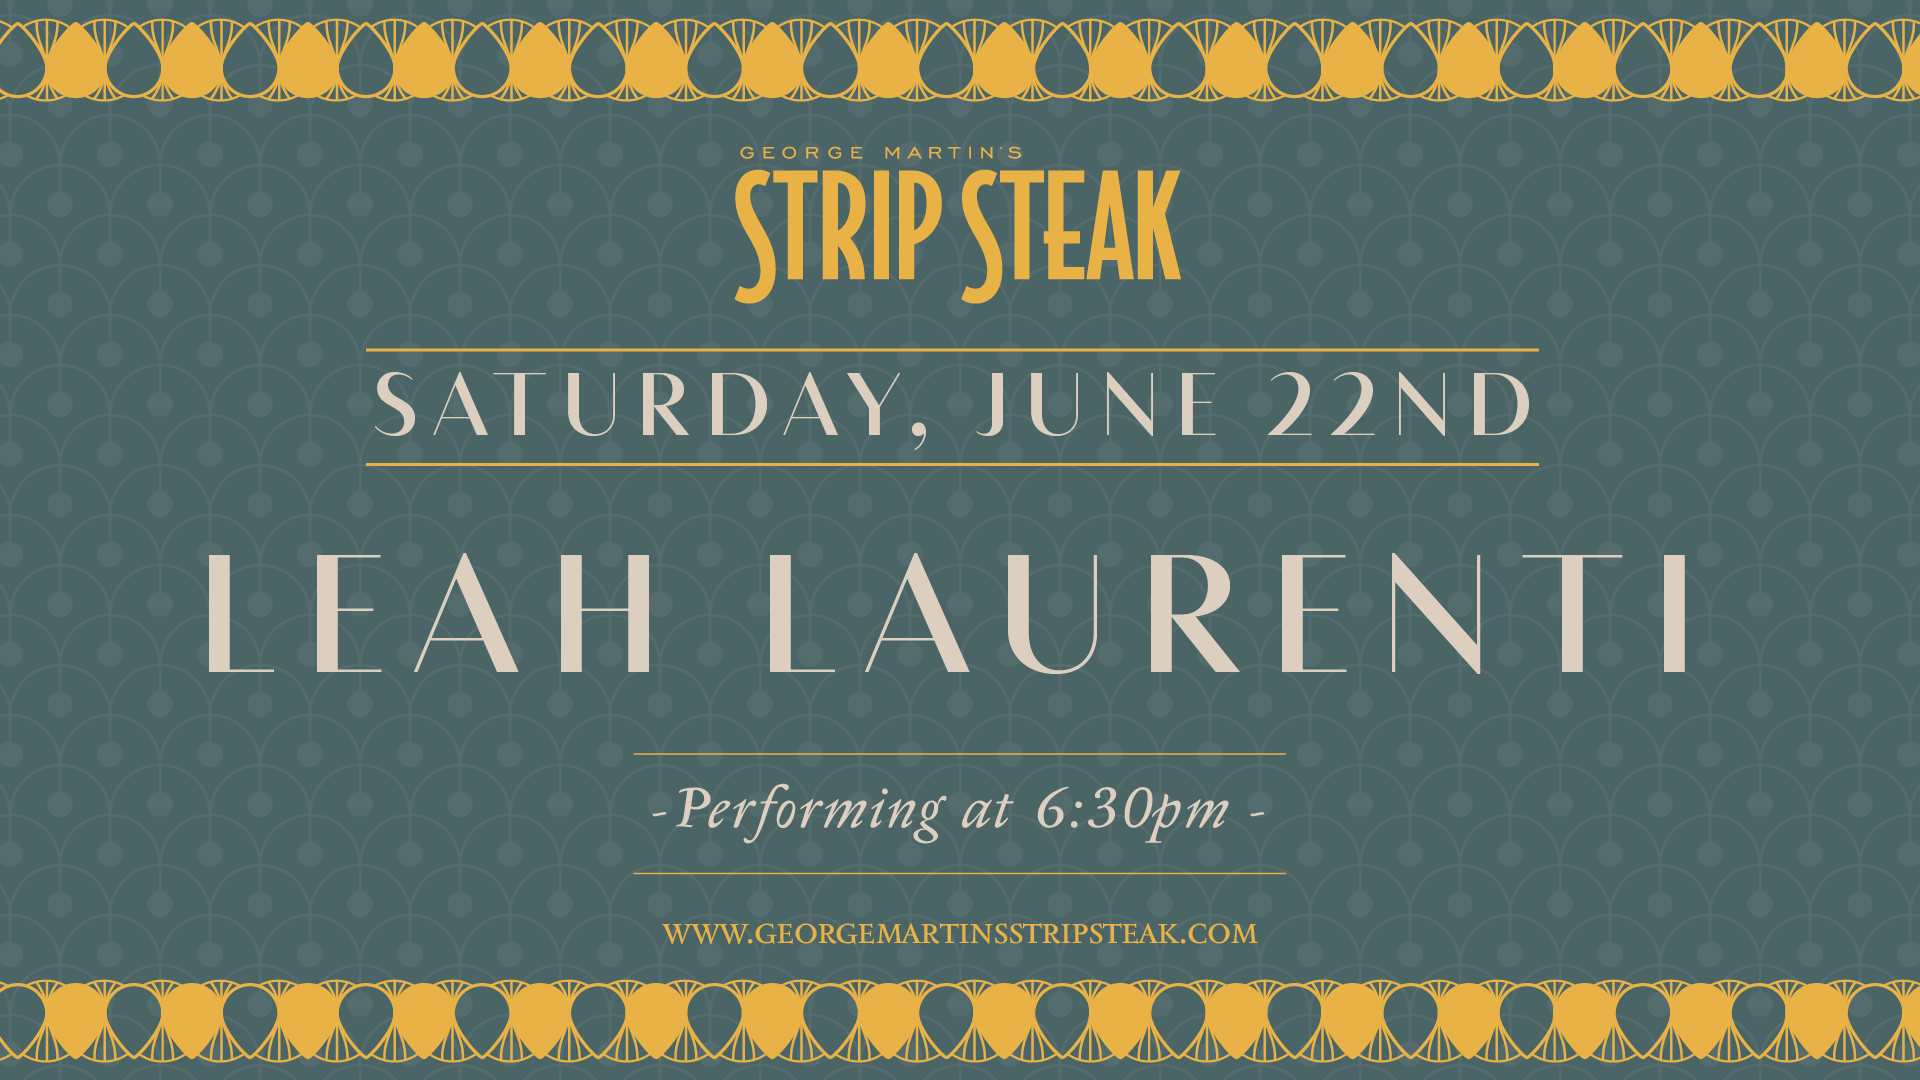 Flyer for live music with Leah Laurenti on June 22nd at 6:30pm.